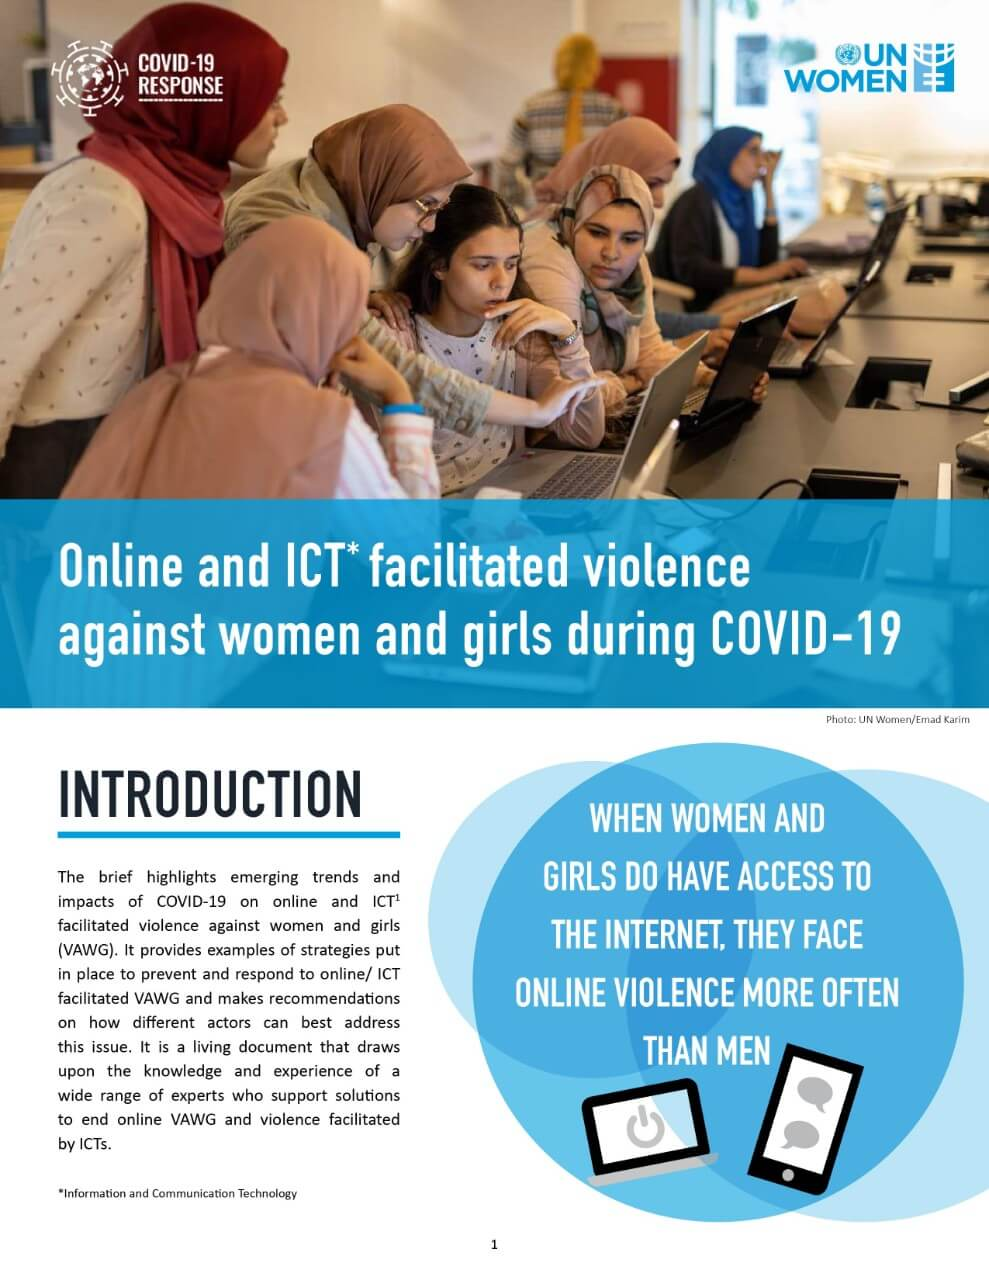 Online and ICT-facilitated violence against women and girls during COVID-19